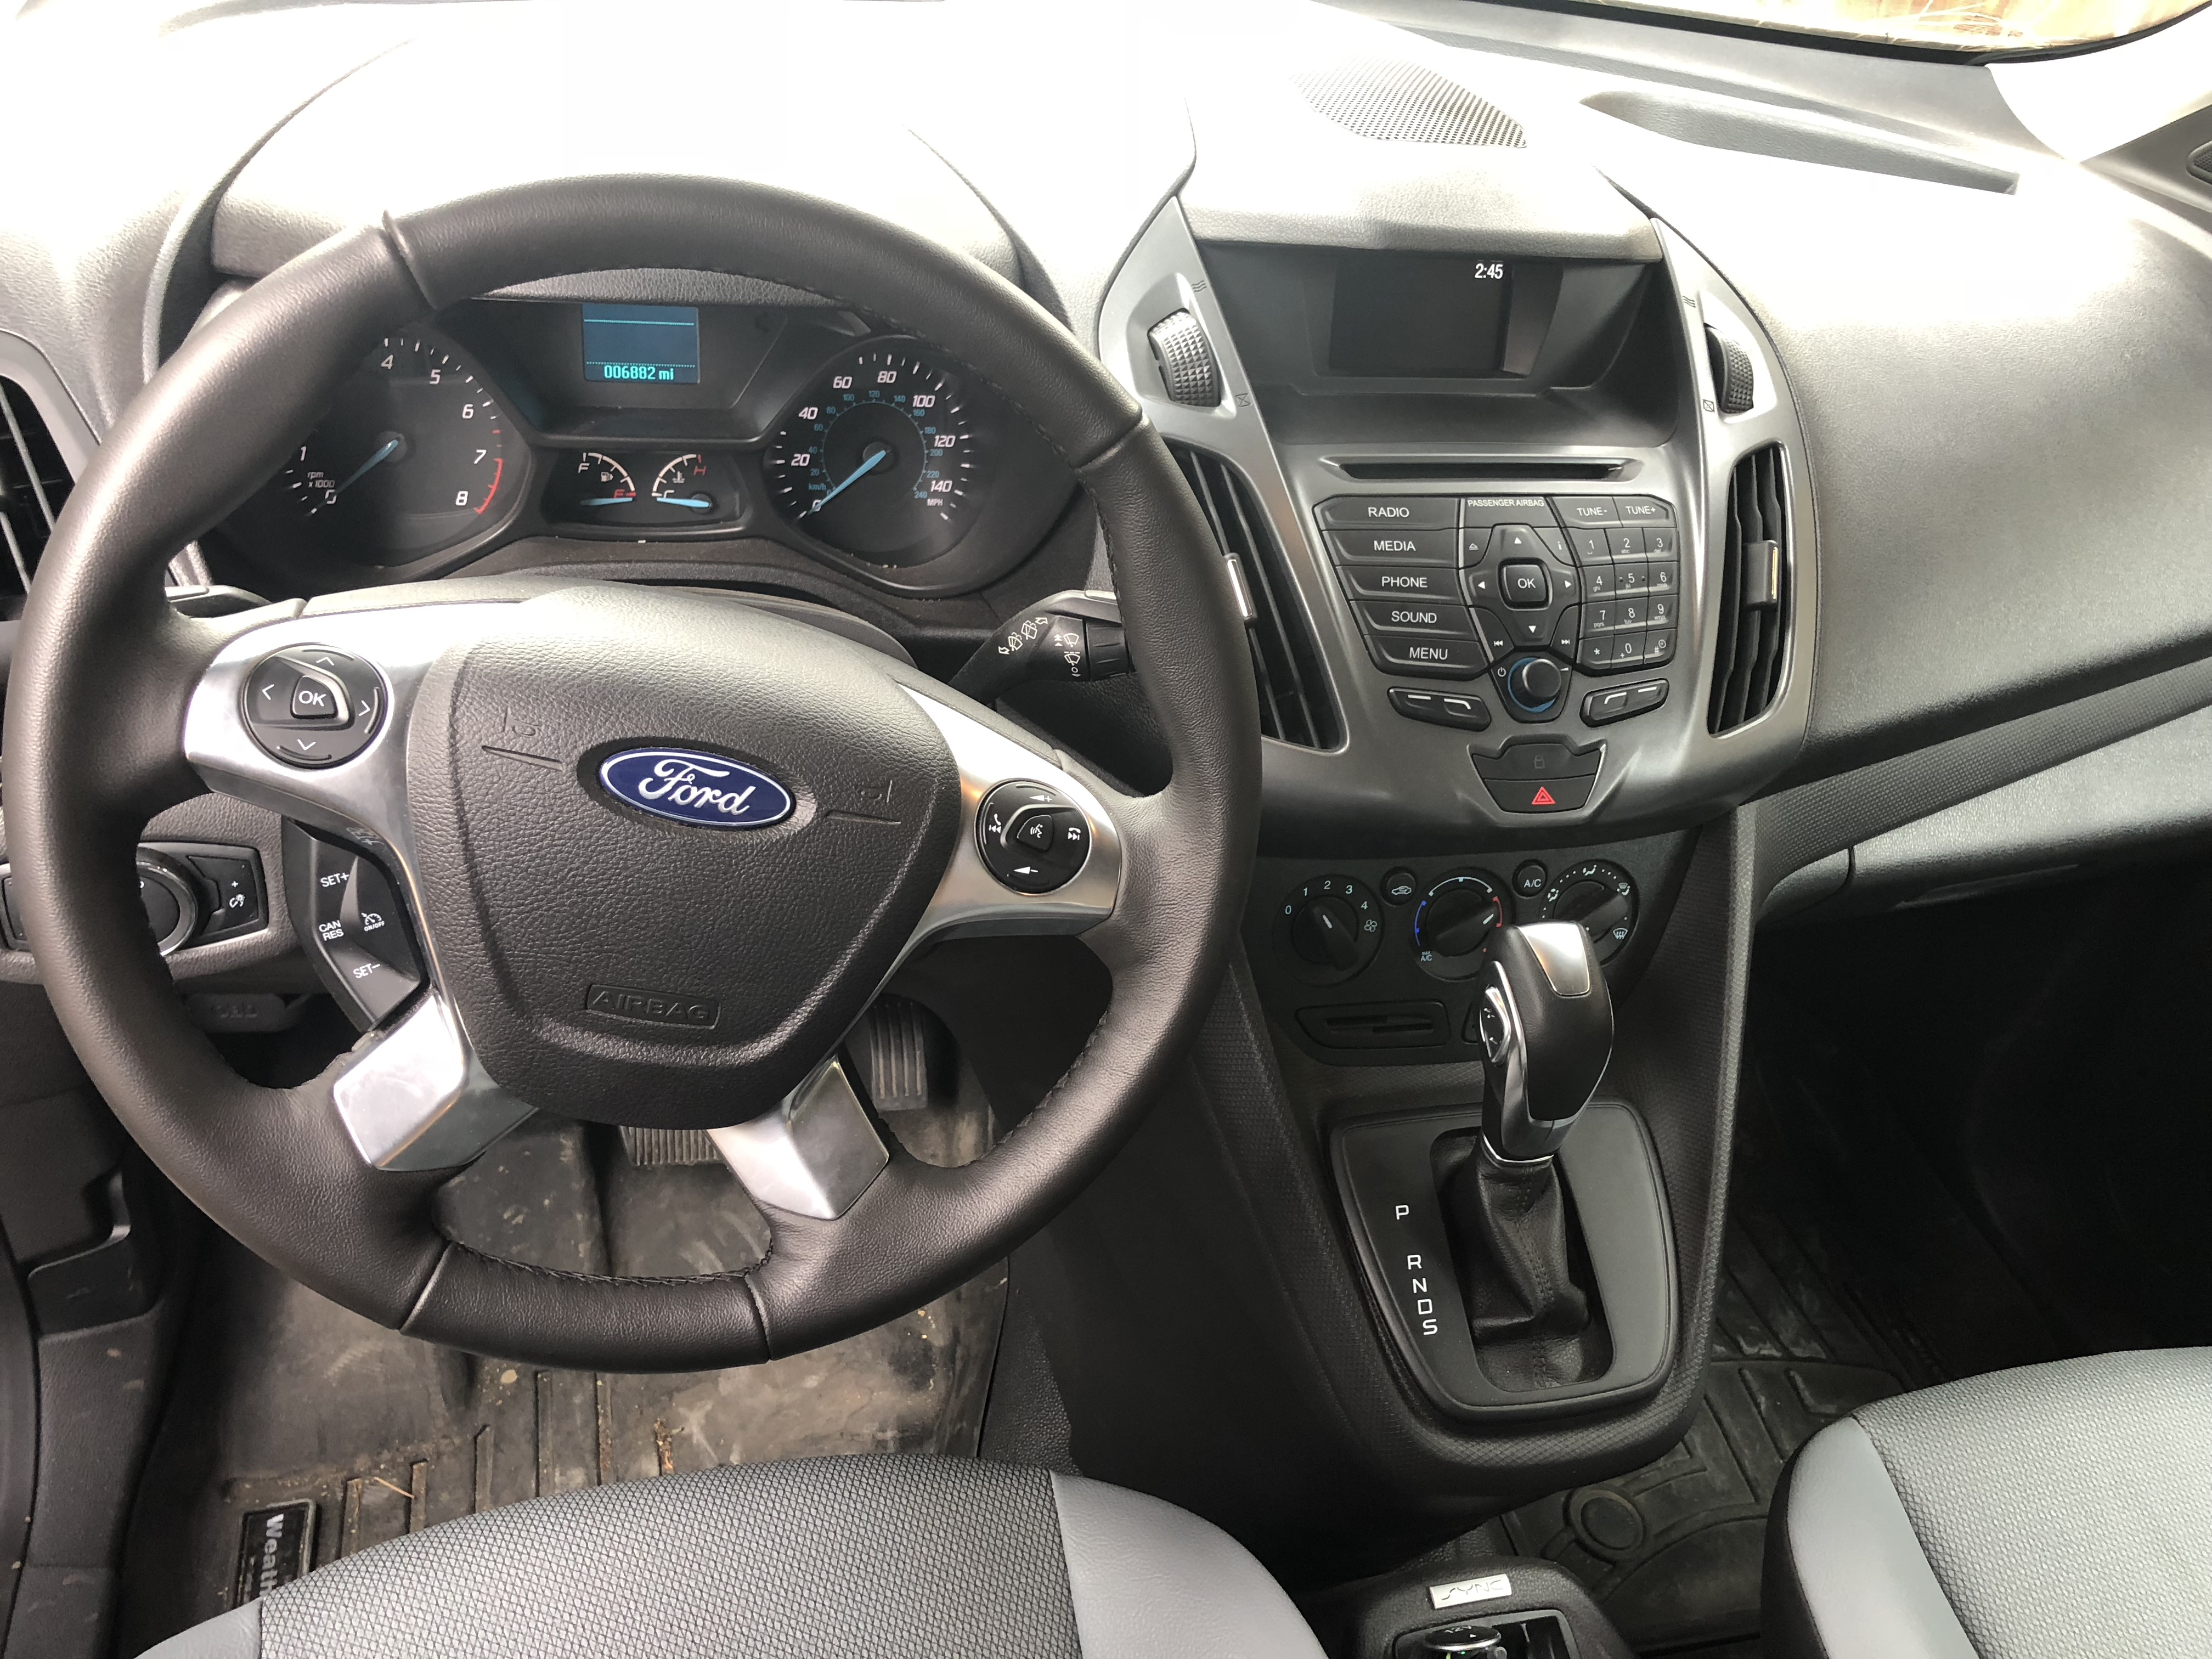 6sp auto. Bluetooth. Cruise control. It's got some of the basic modern conveniences that make for a very comfortable drive.. Ford Transit Connect SWB 2018